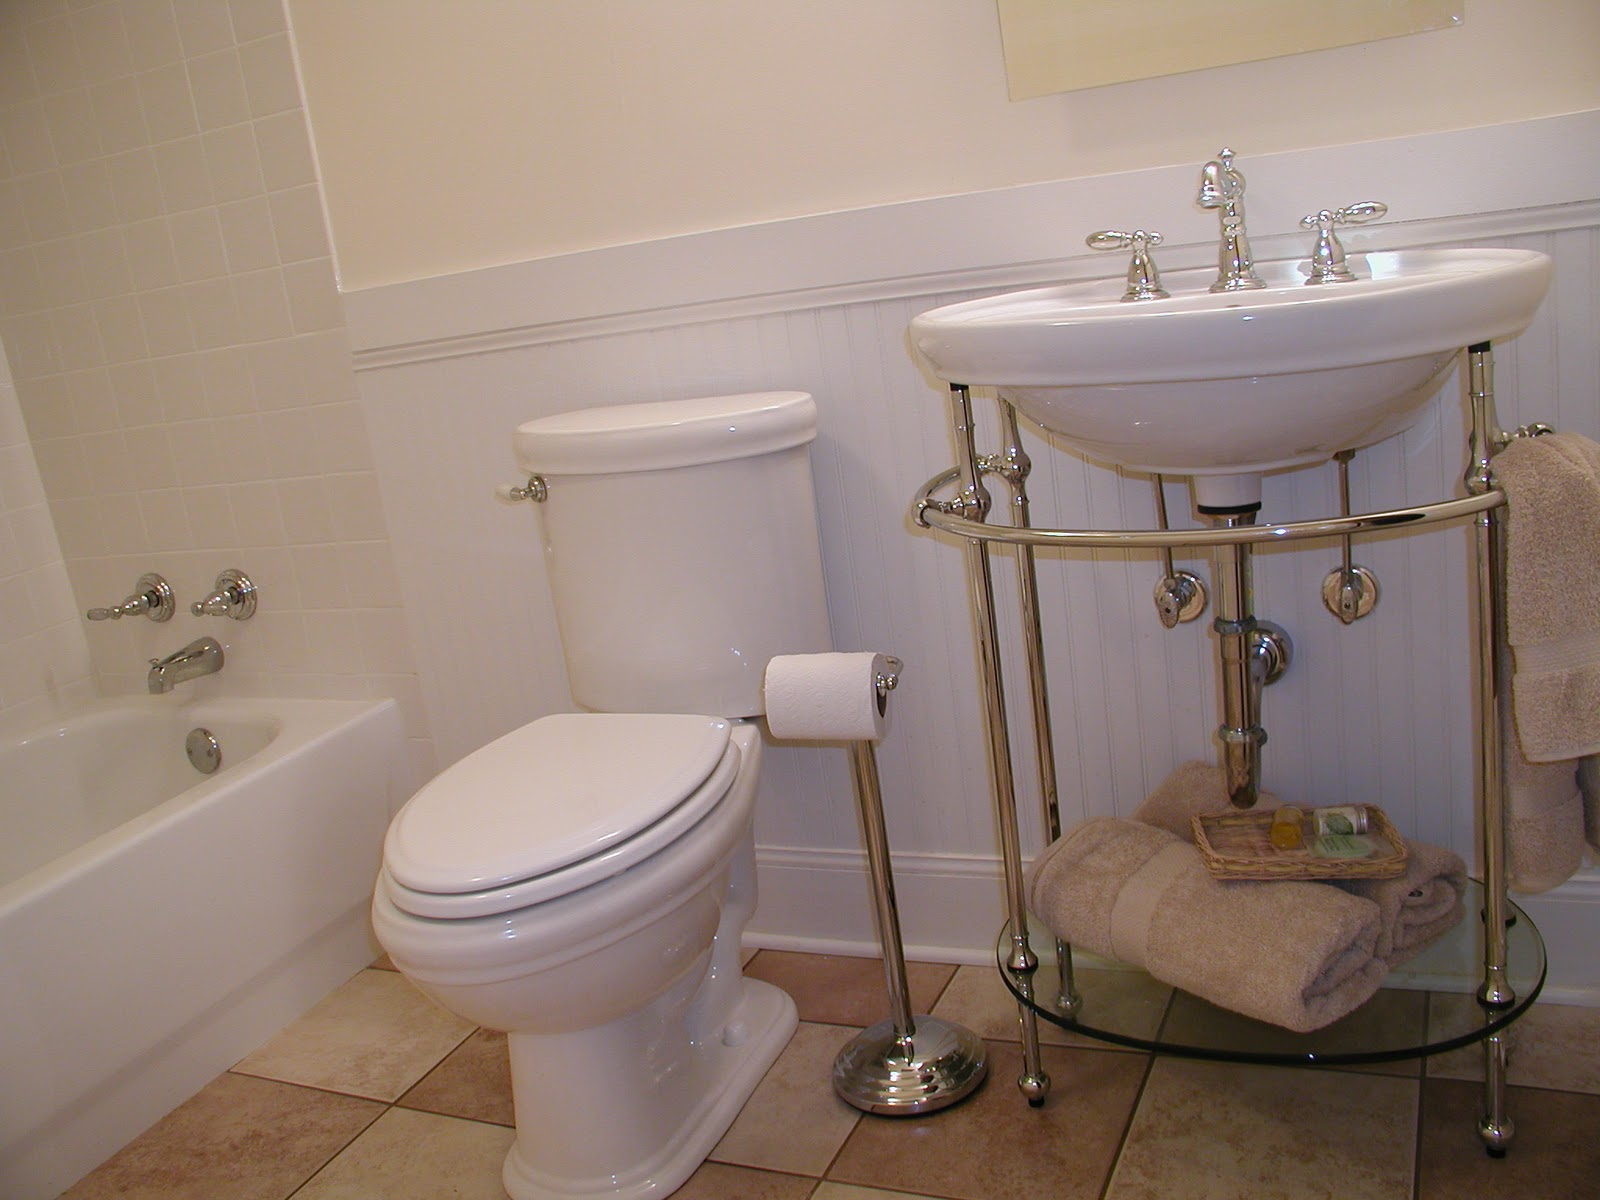 average cost of bathroom remodel. average cost of a bathroom